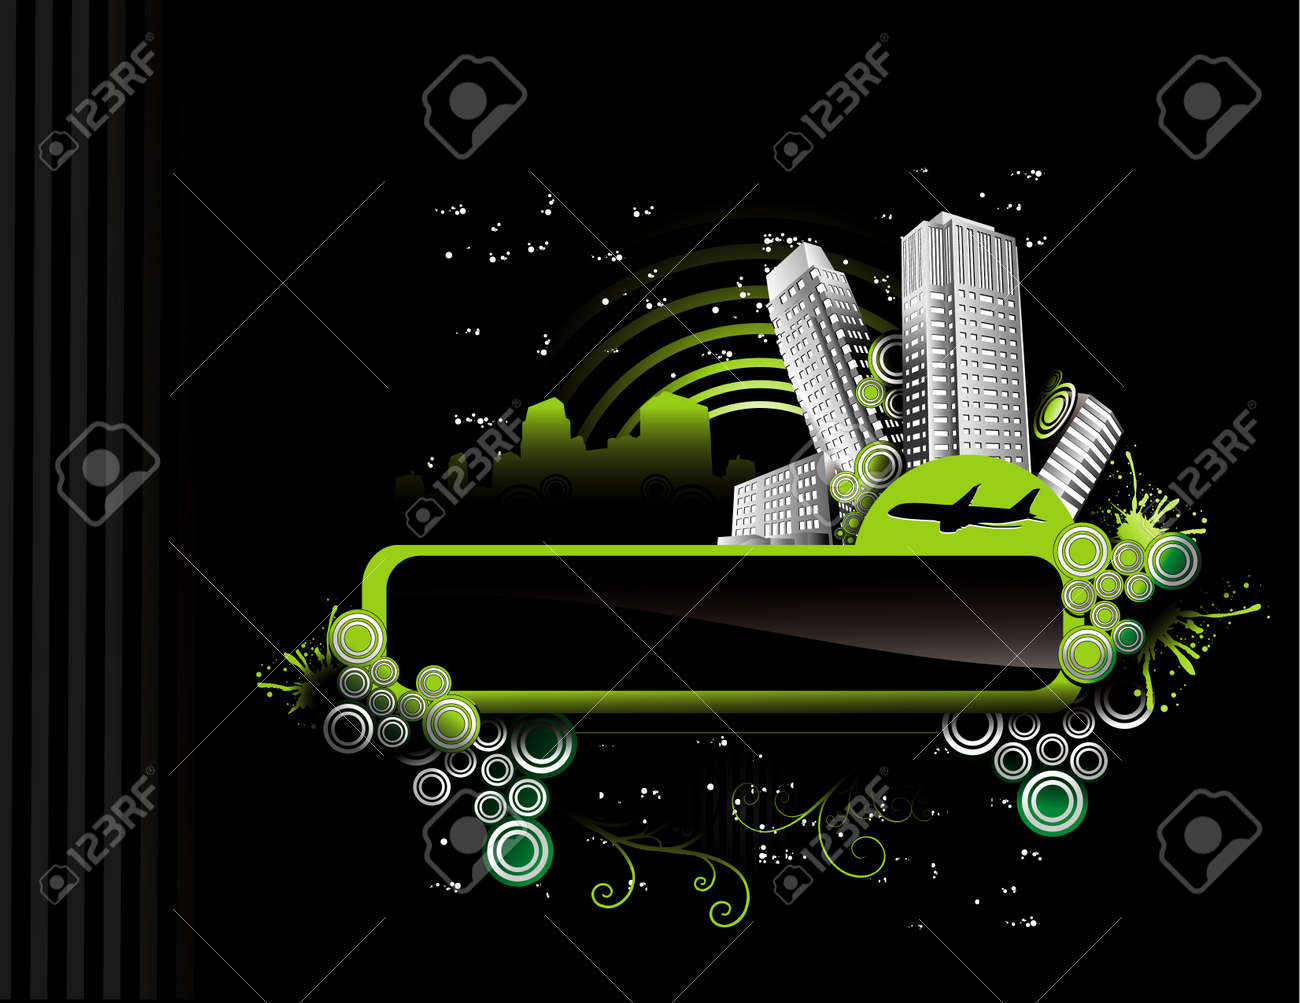 vector illustration of night city with dark background Stock Vector - 3293235